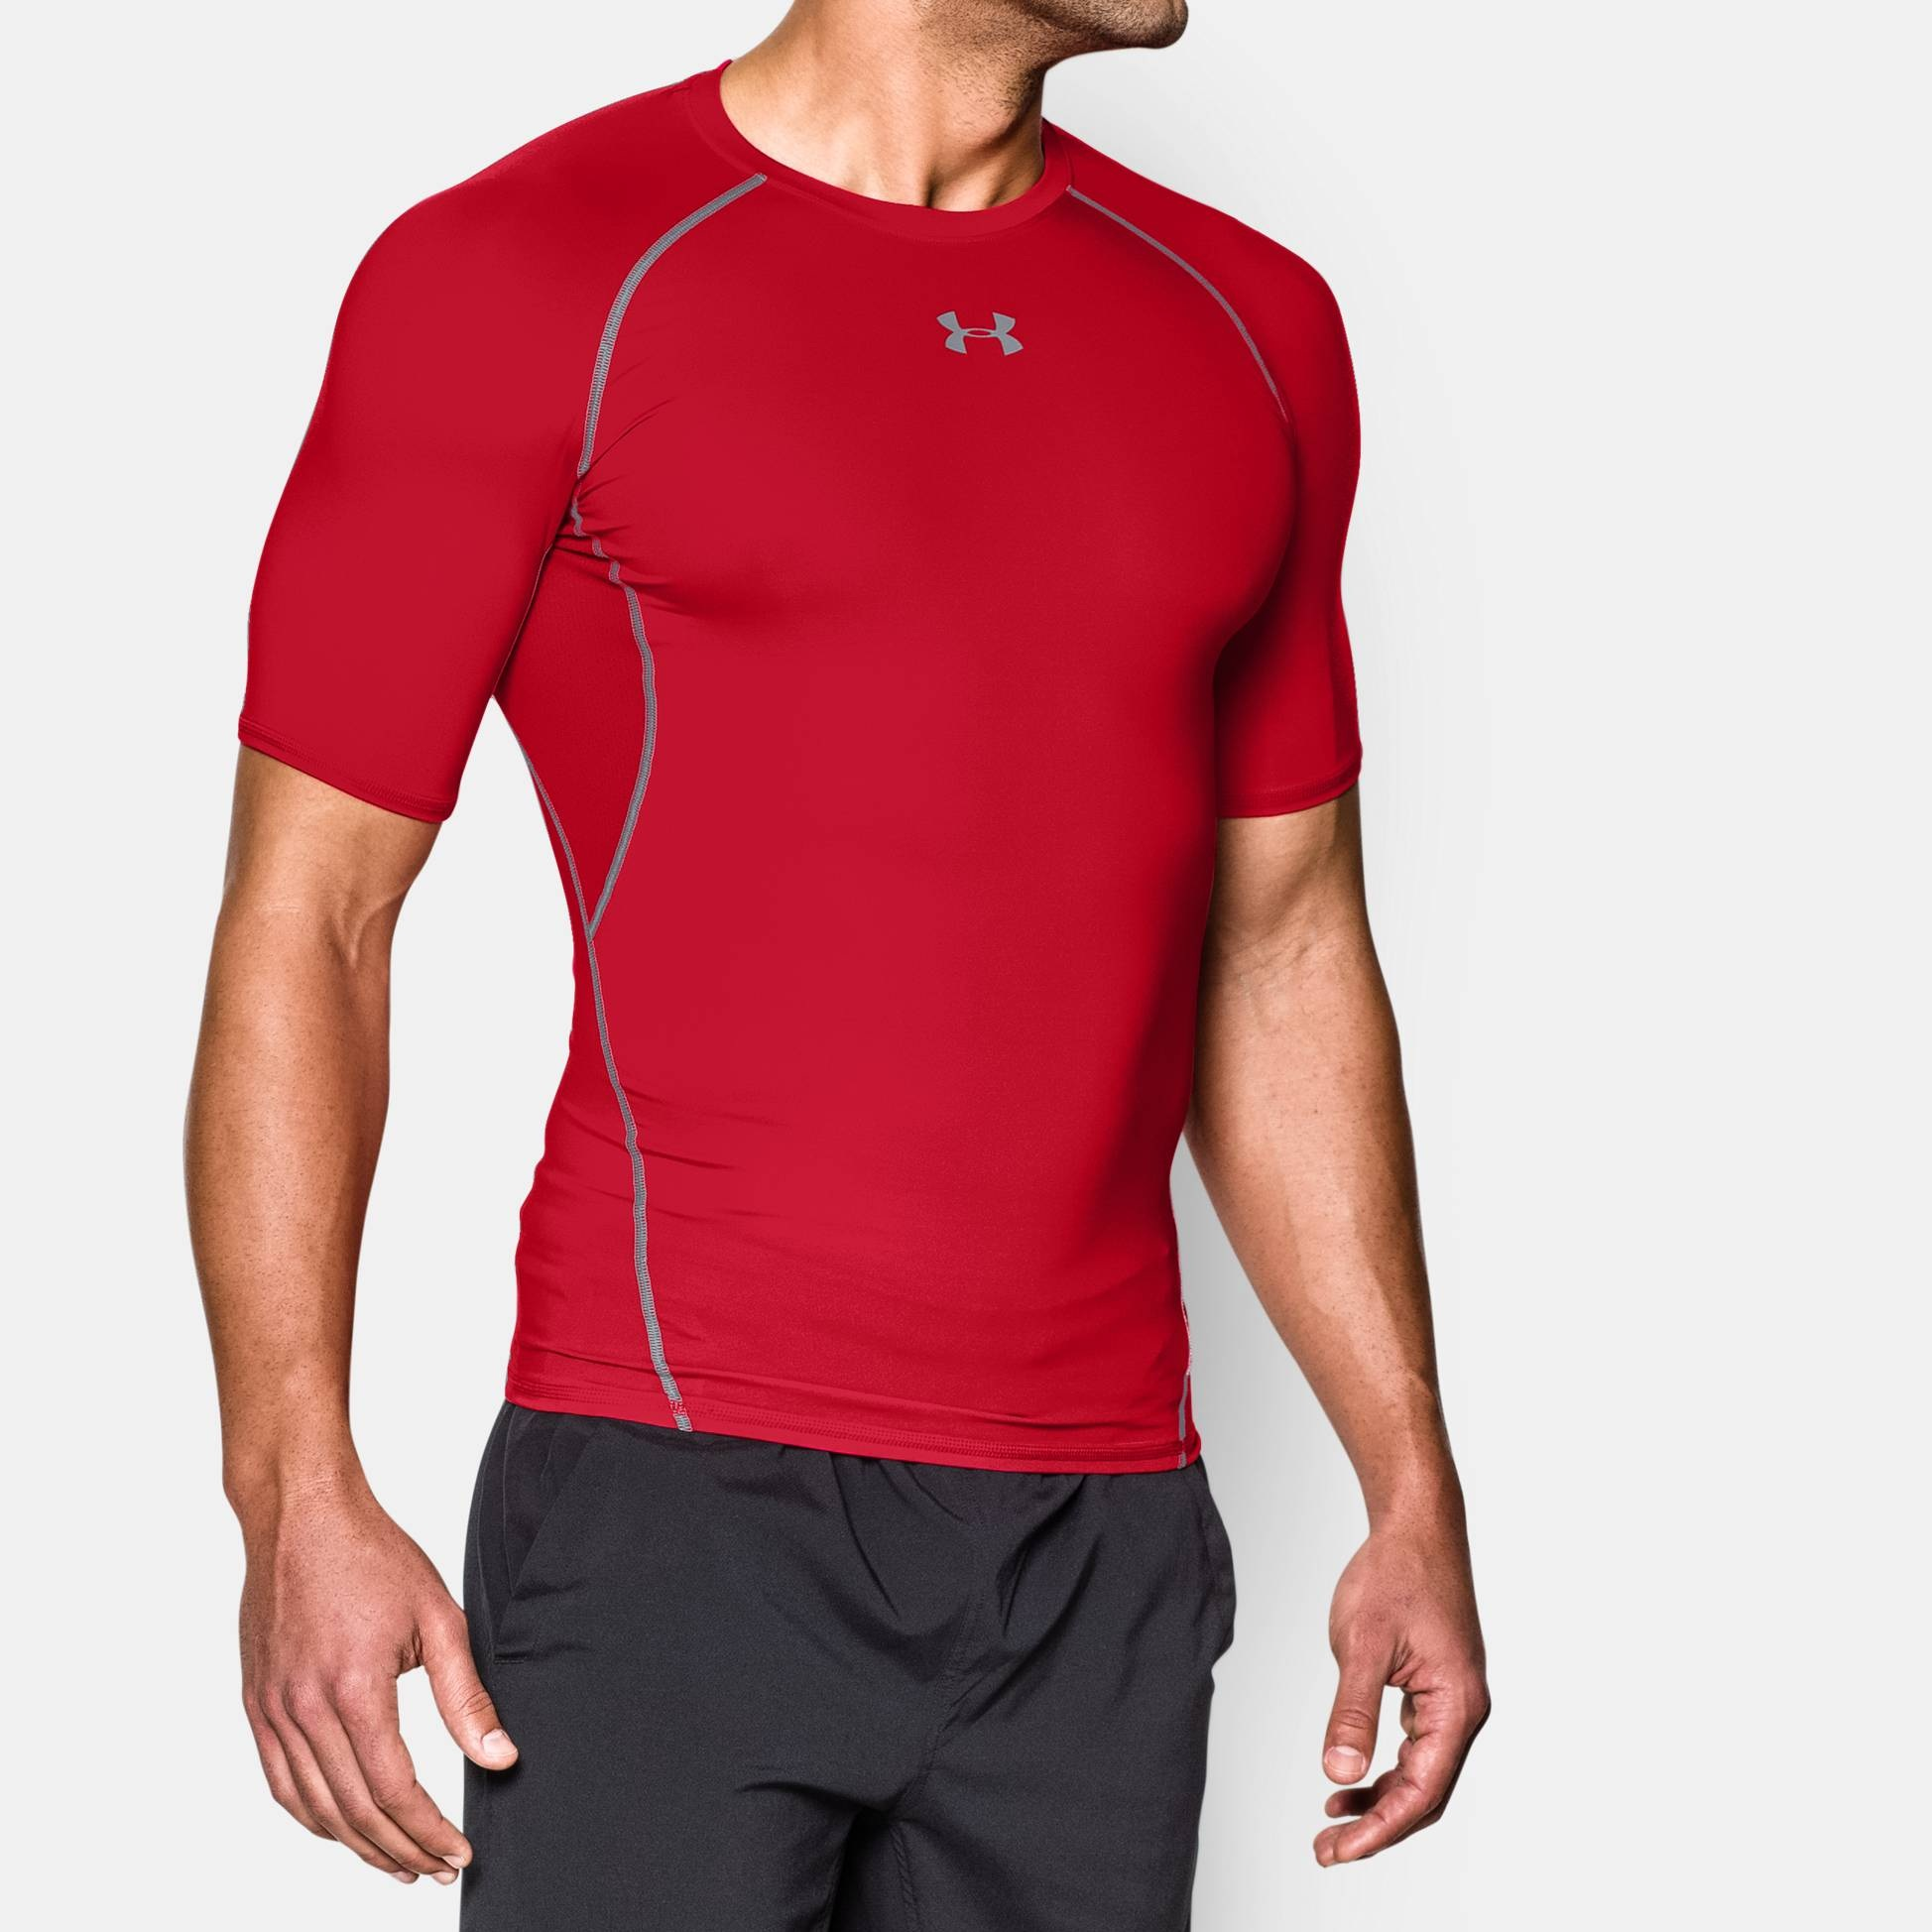 Clothing under armour armour compression shirt fitness for Under armour i will shirt